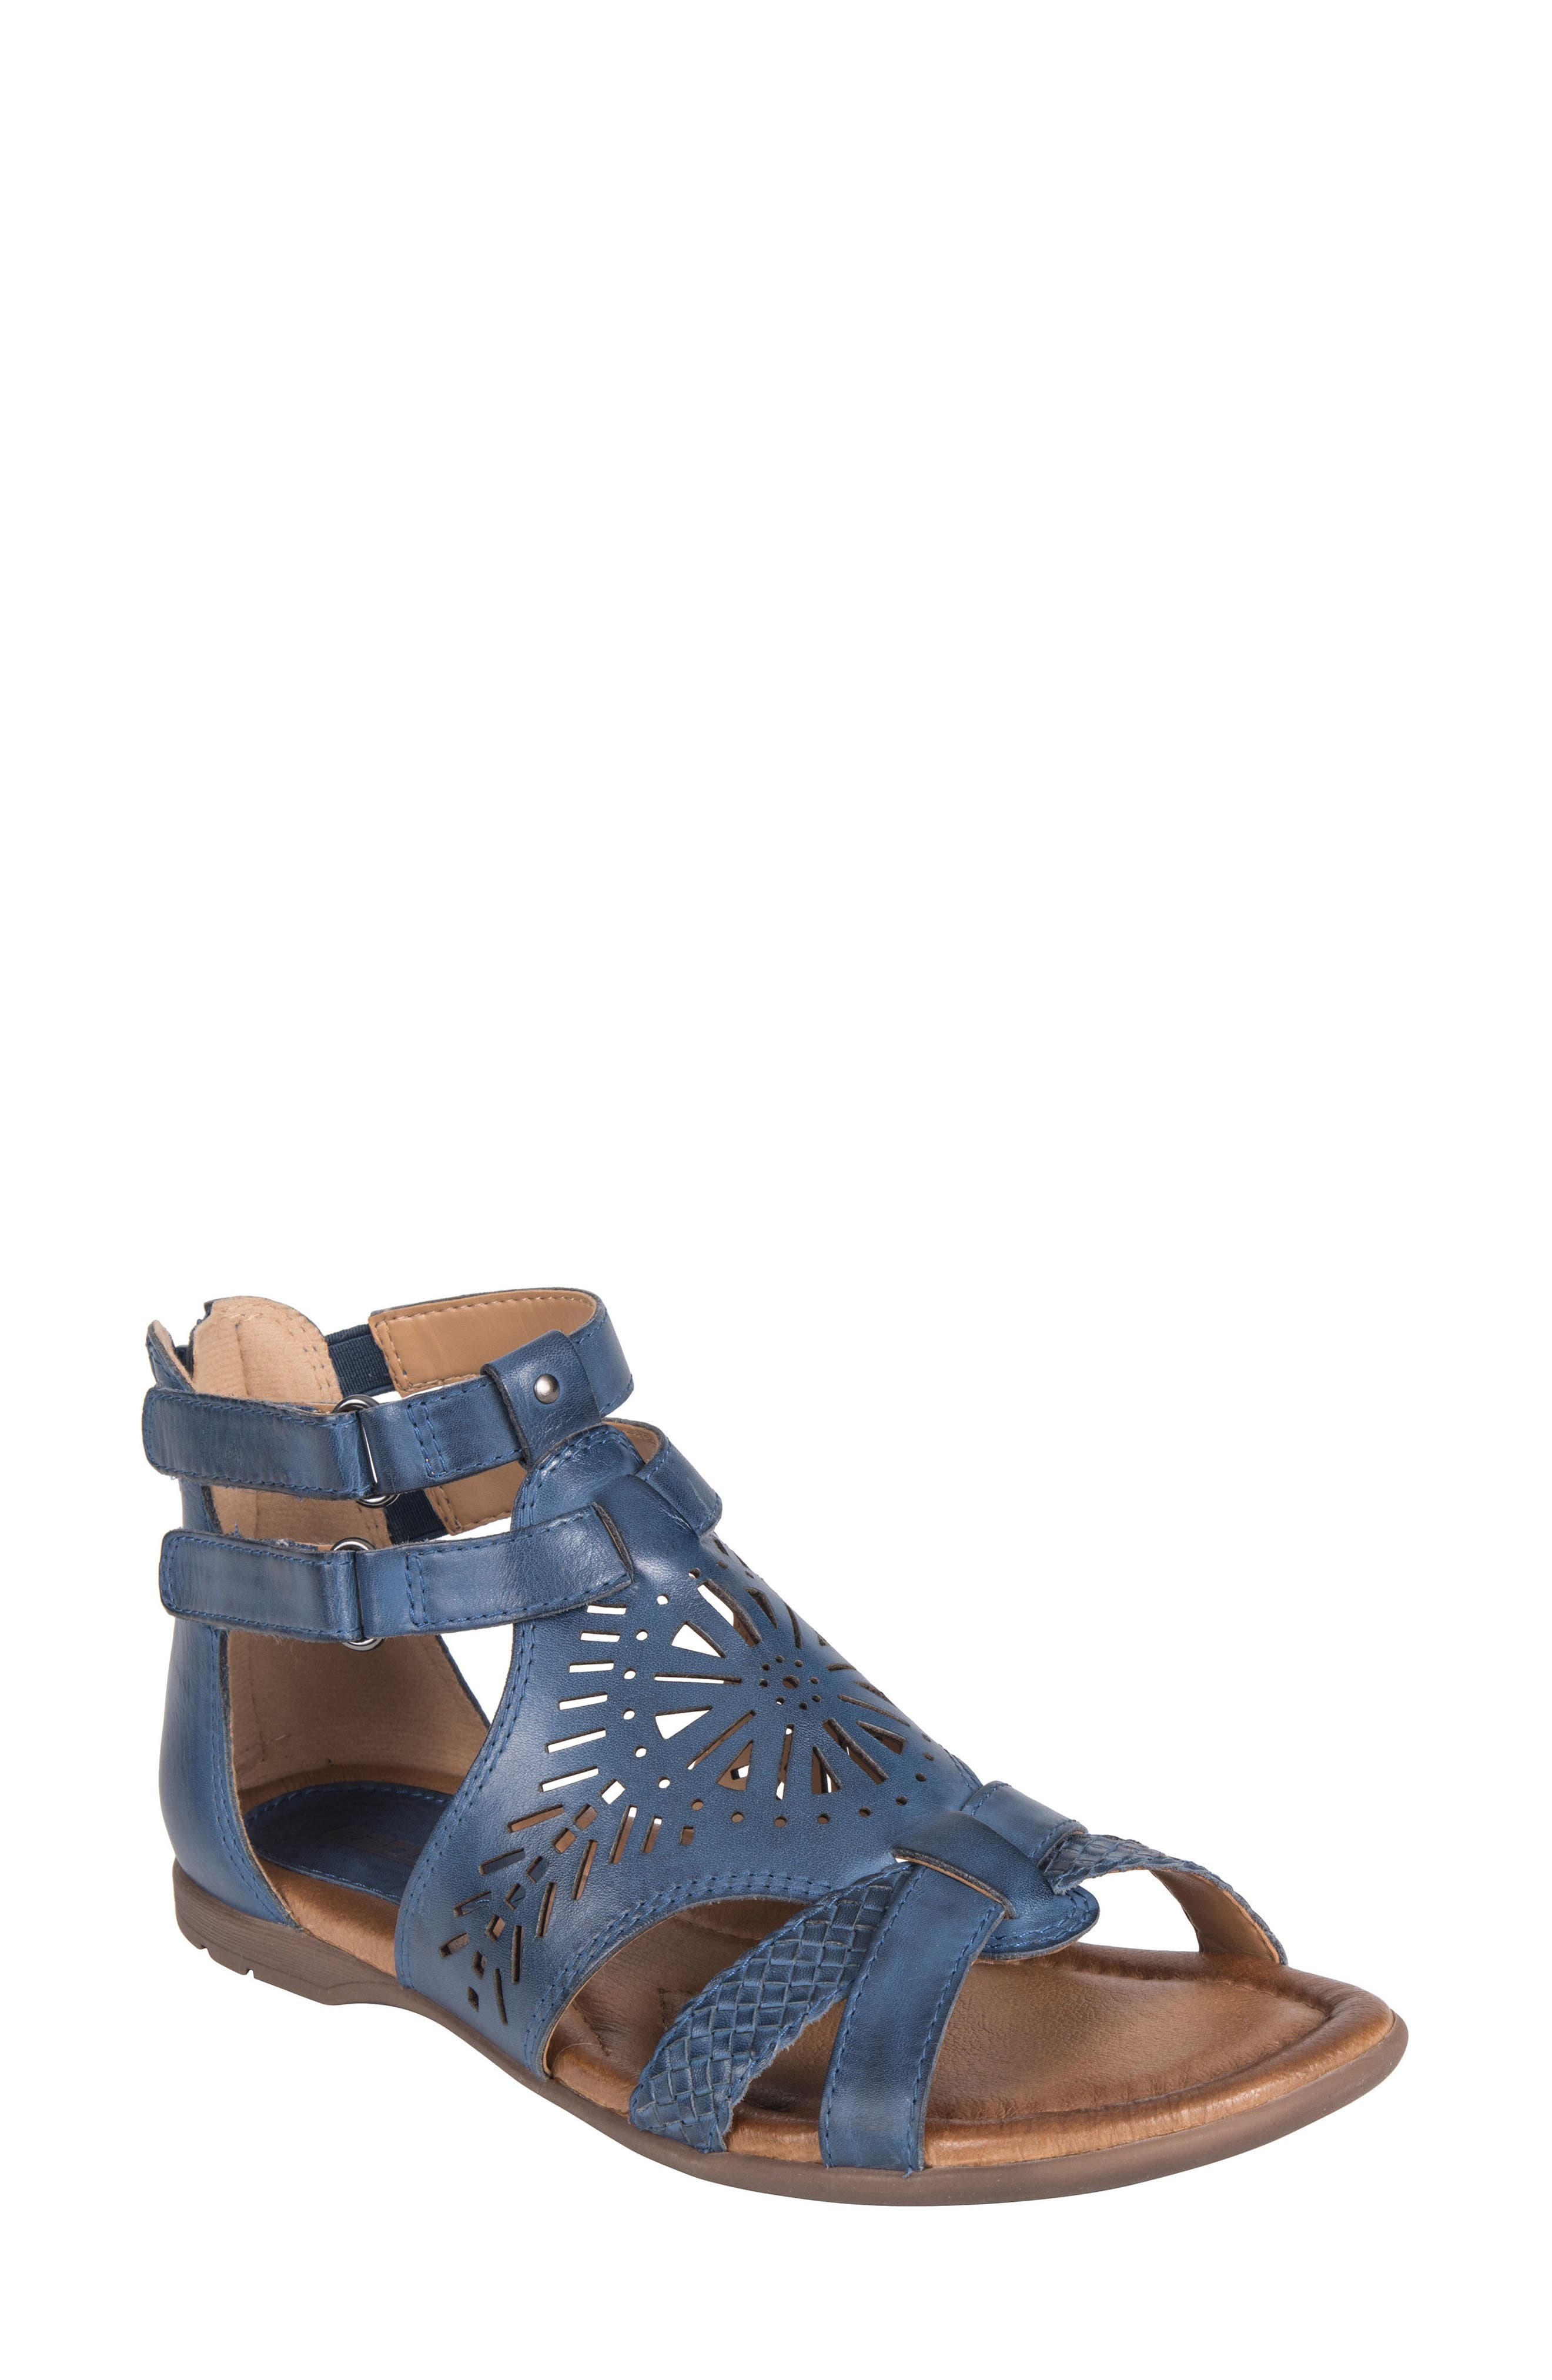 Breaker Sandal,                             Main thumbnail 1, color,                             SAPPHIRE BLUE LEATHER